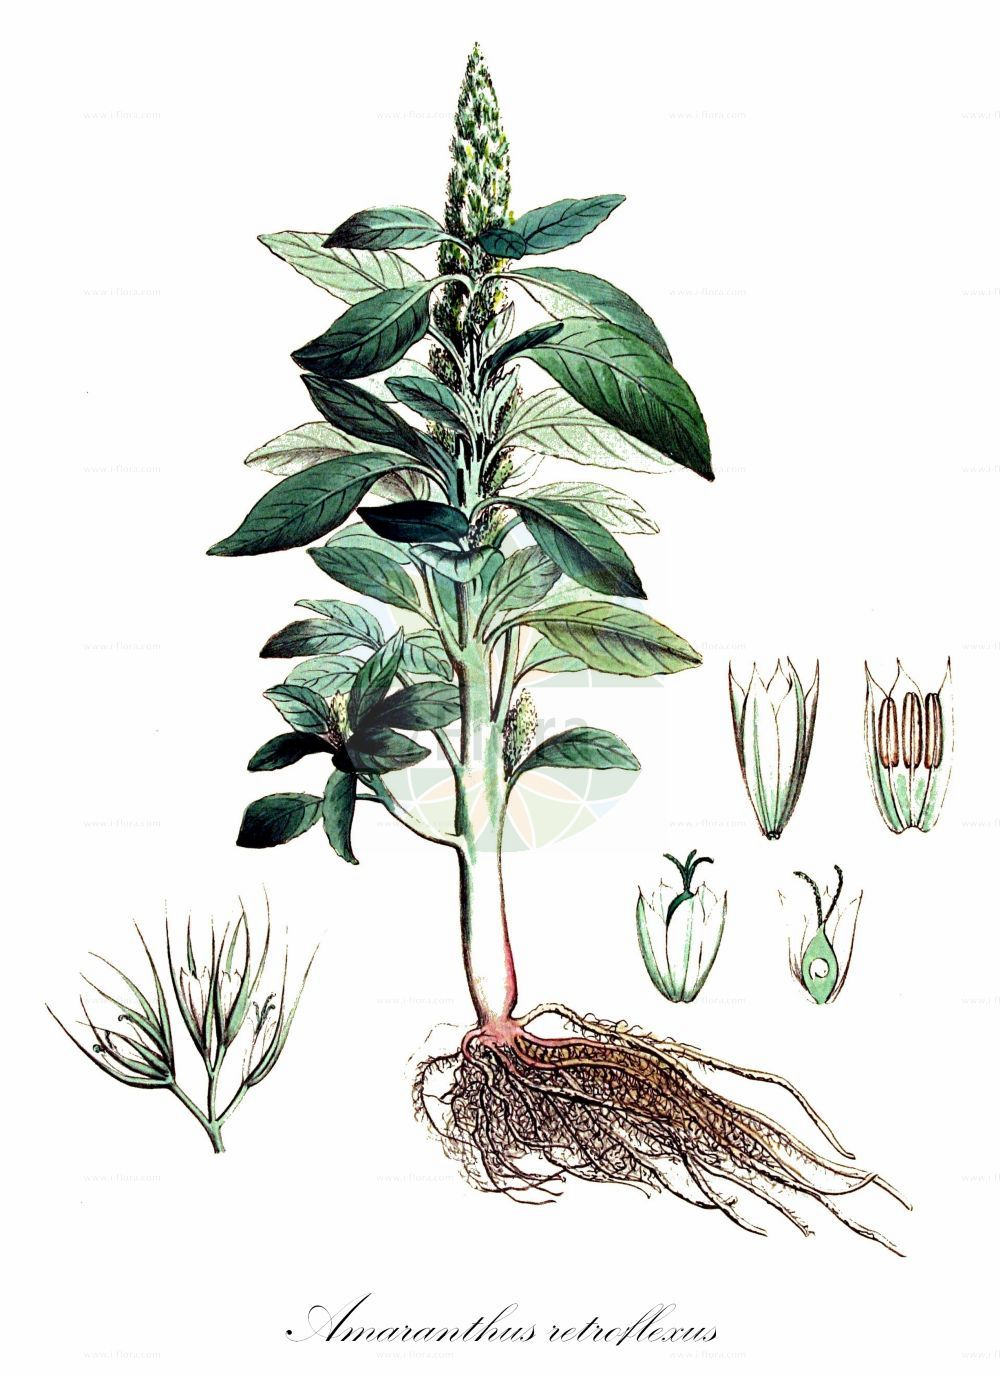 Historische Abbildung von Amaranthus retroflexus (Zurueckgekruemmter Fuchsschwanz - Common Amaranth). Das Bild zeigt Blatt, Bluete, Frucht und Same. ---- Historical Drawing of Amaranthus retroflexus (Zurueckgekruemmter Fuchsschwanz - Common Amaranth).The image is showing leaf, flower, fruit and seed.(Amaranthus retroflexus,Zurueckgekruemmter Fuchsschwanz,Common Amaranth,Amaranthus strictus,Galliaria retroflexa,Zurueckgekruemmter Amarant,Careless Weed,Pigweed,Redroot,Redroot Amaranth,Redroot Pigweed,Slender Pigweed,Wild Amaranth,Amaranthus,Fuchsschwanz,Pigweed,Amaranthaceae,Fuchsschwanzgewaechse,Pigweed family,Blatt,Bluete,Frucht,Same,leaf,flower,fruit,seed,Kops (1800-1934))